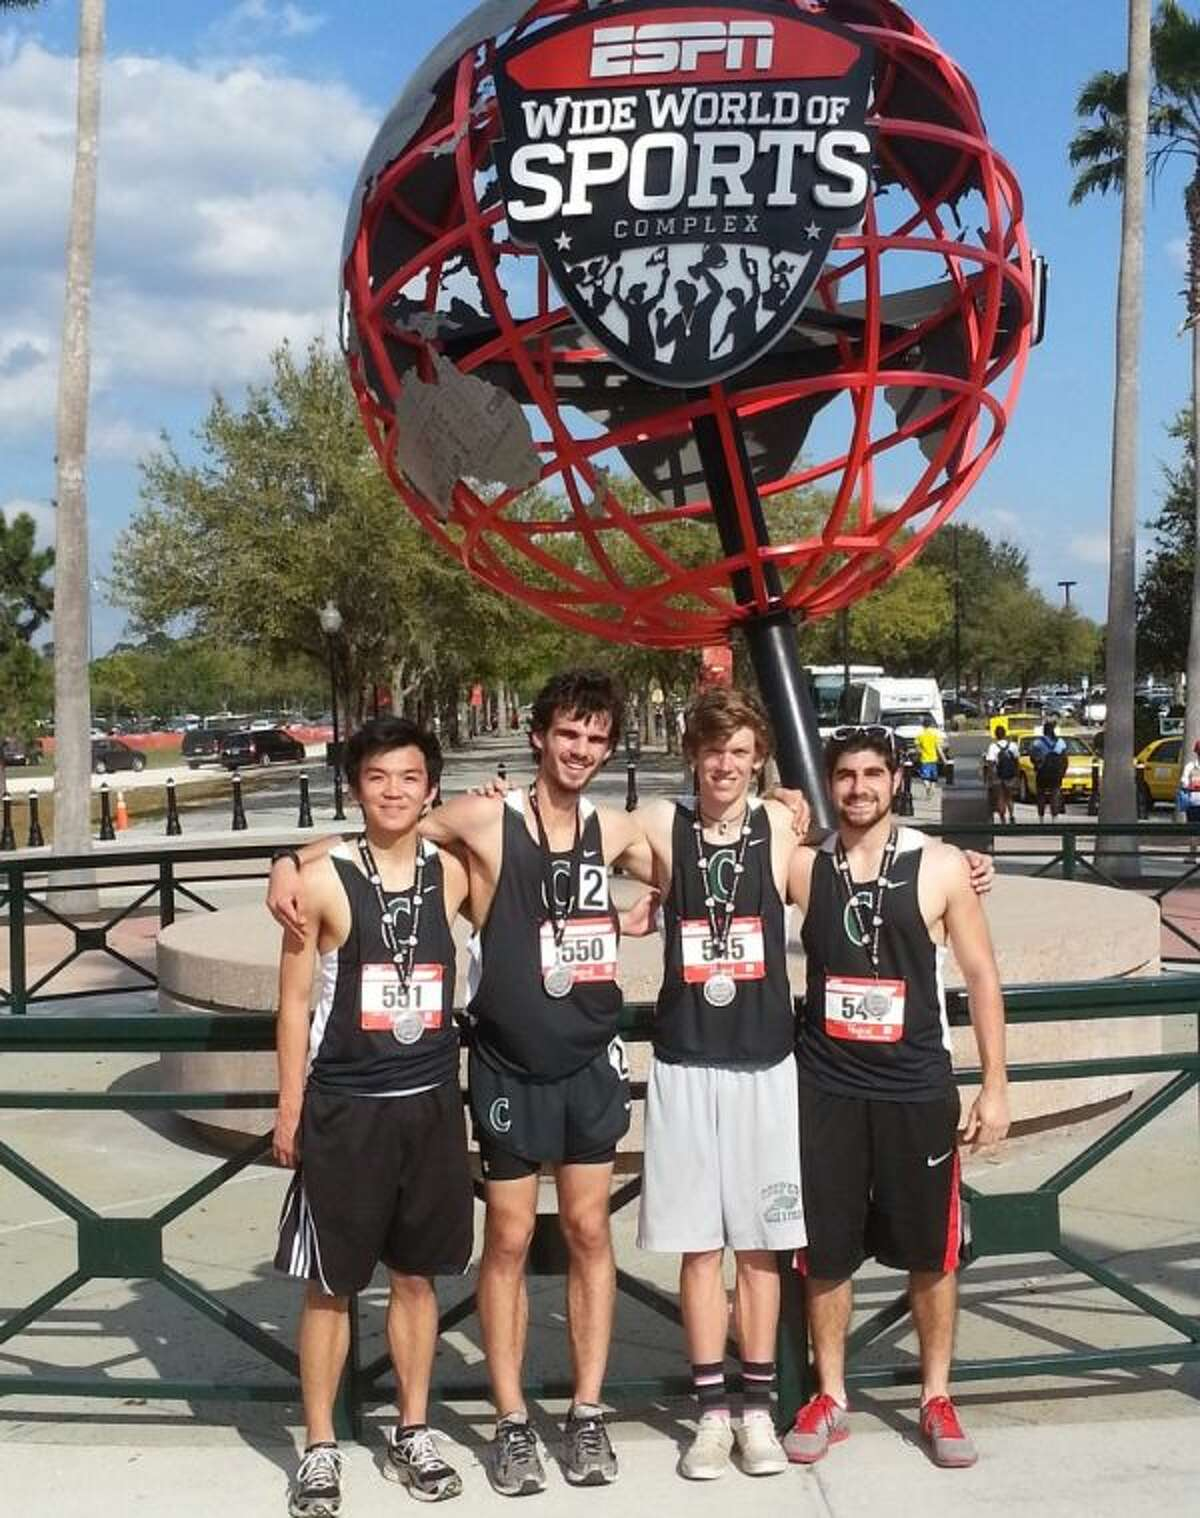 John Cooper athletes (from left) Derek Tam, Jacob Stelter, Cody Bohan and Rami Asi placed second in the distance medley relay at the Walt Disney World Open in Florida.